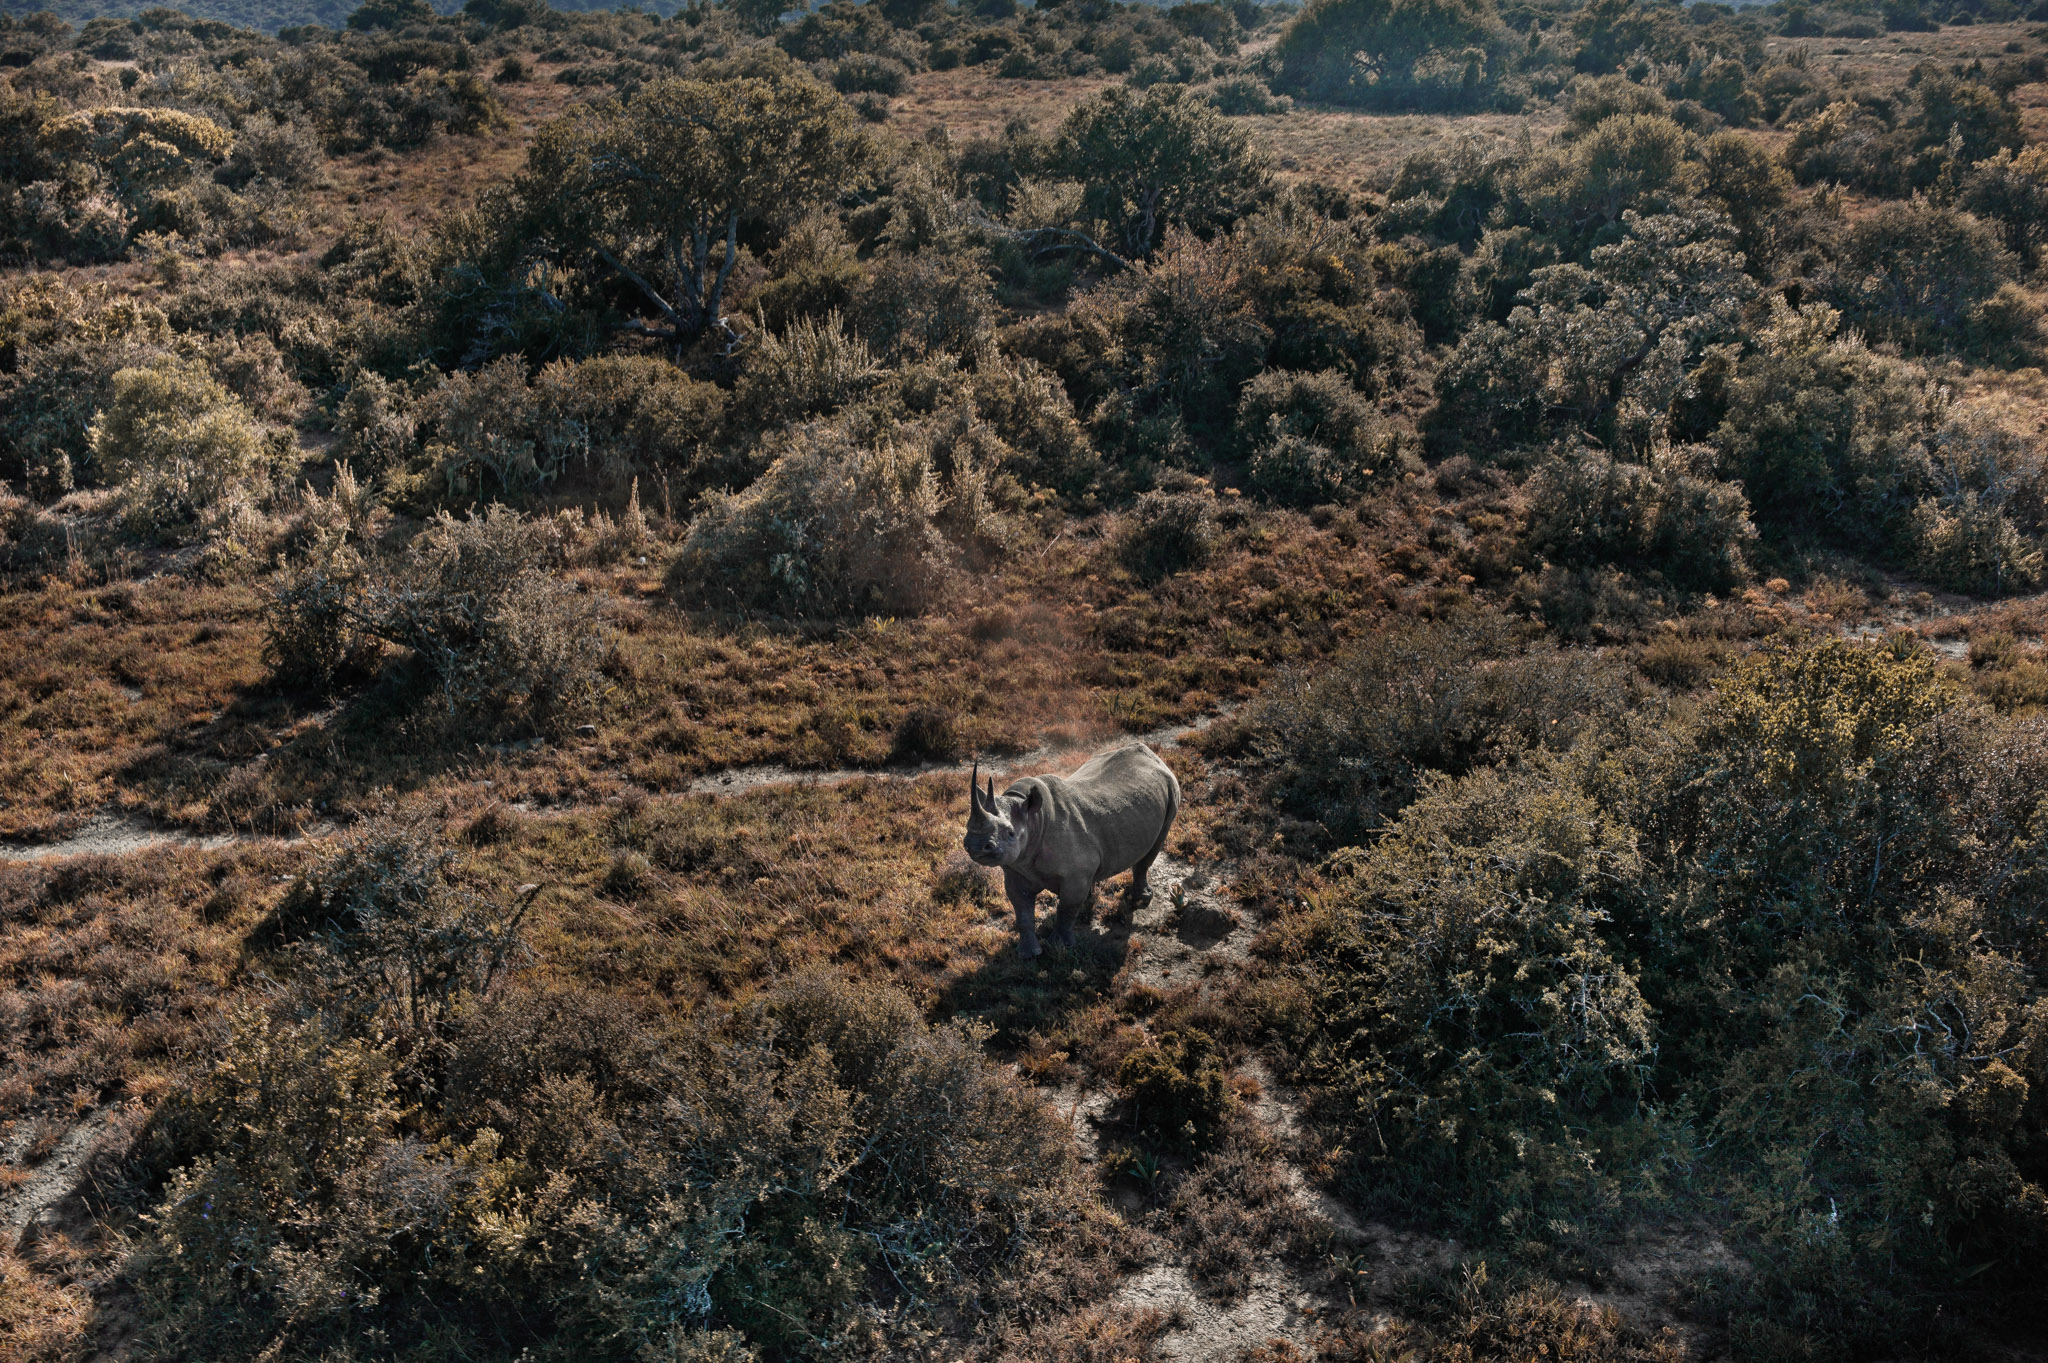 Declared by some to be extinct in Mozambique as recently as 2013, rhinos like this one have begun to make their way back across the country's border with South Africa. Protection by IAPF rangers has been instrumental to this comeback. Photograph by Erico Hiller